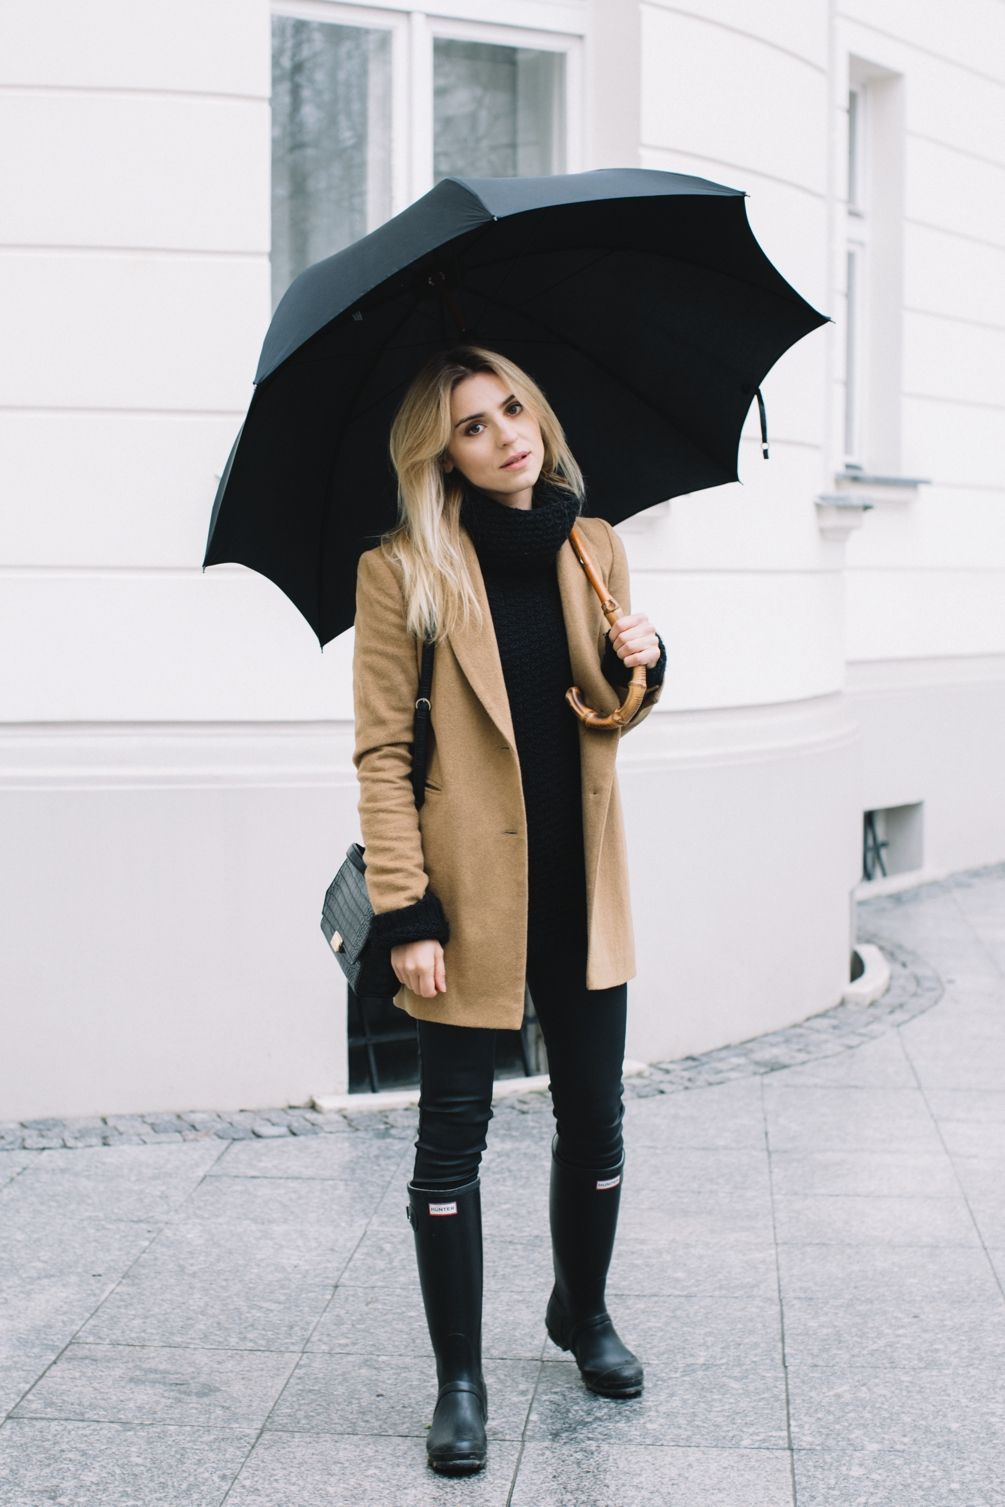 classic neutrals look; camel coat and hunters. Winter Outfits For Teen Girls  ...